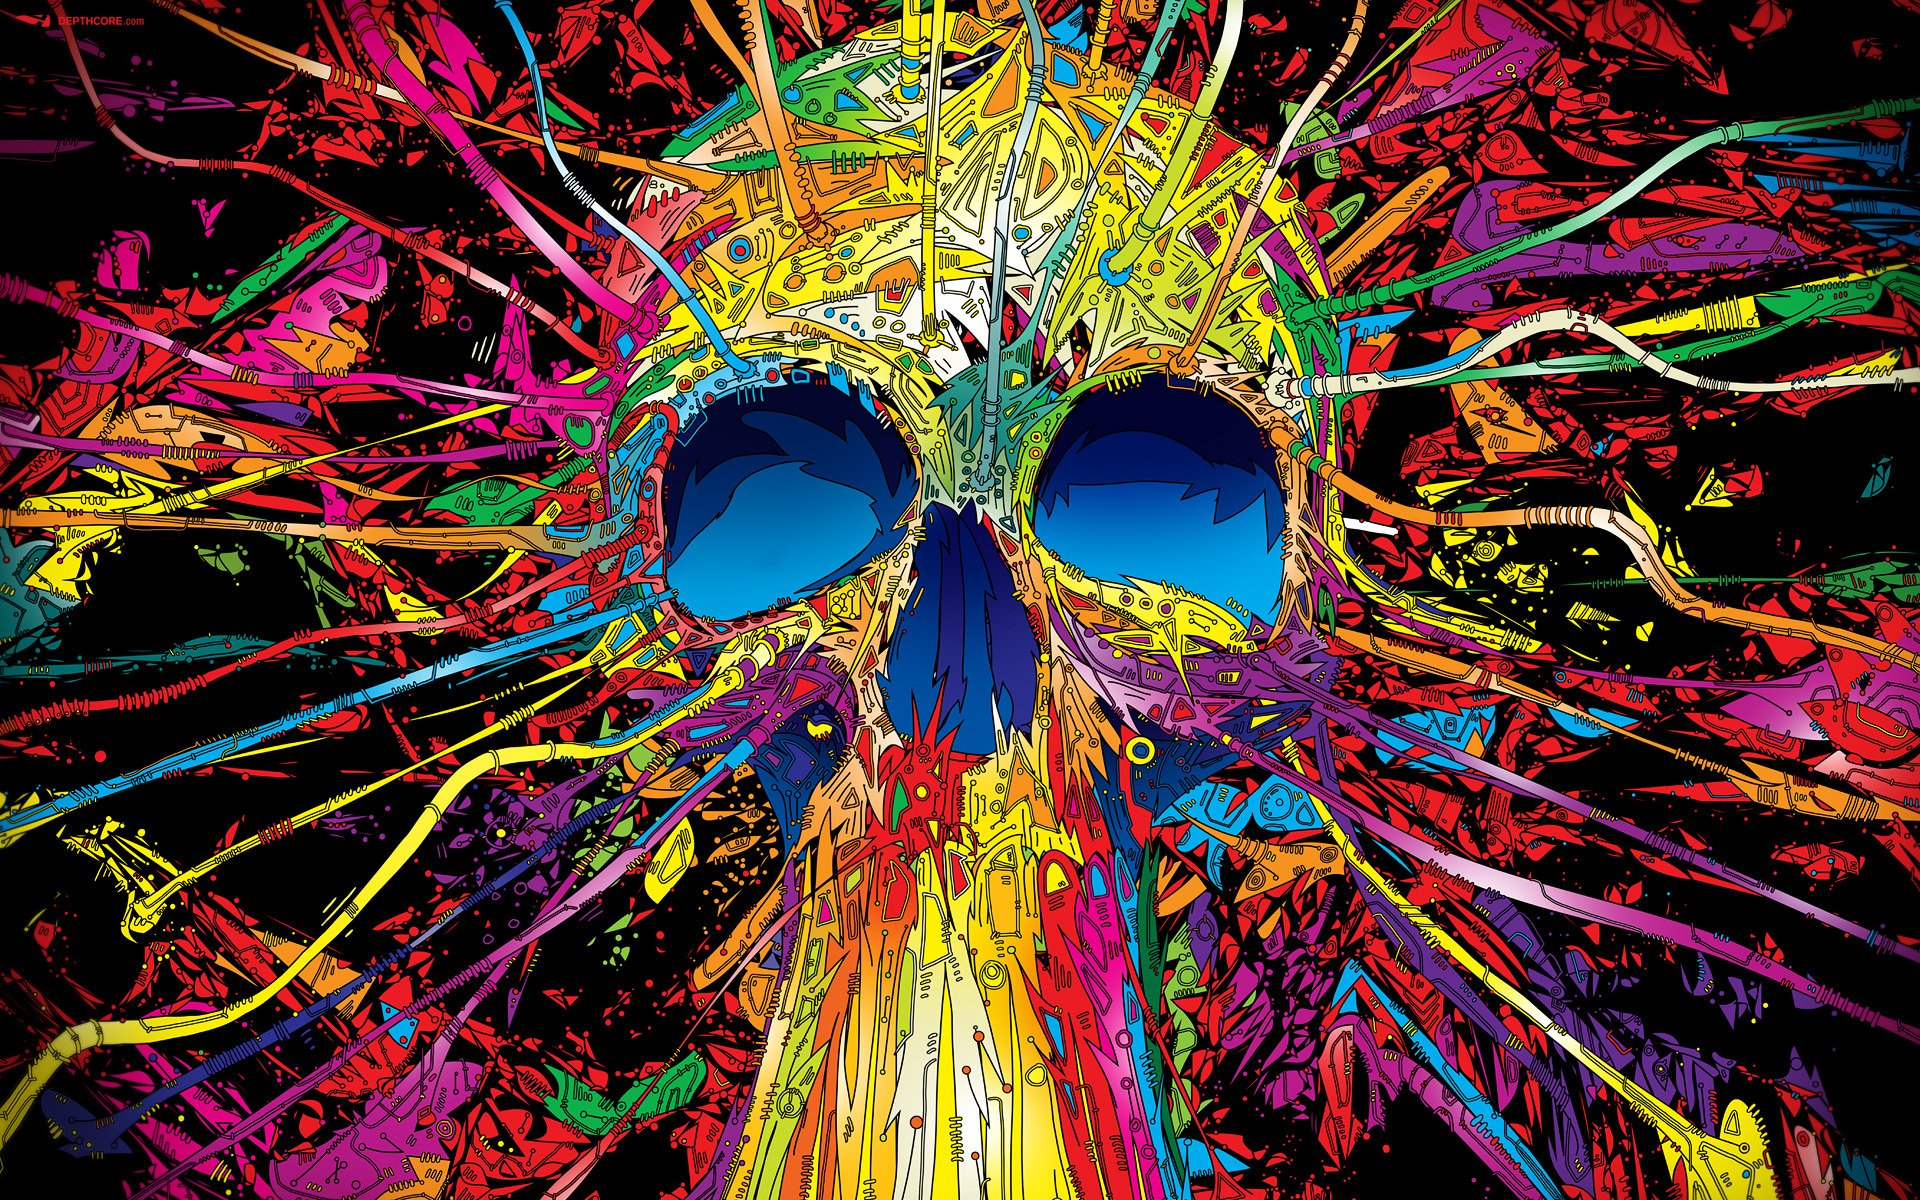 skull hd backgrounds wallpaper psychedelic skull hd backgrounds hd 1920x1200